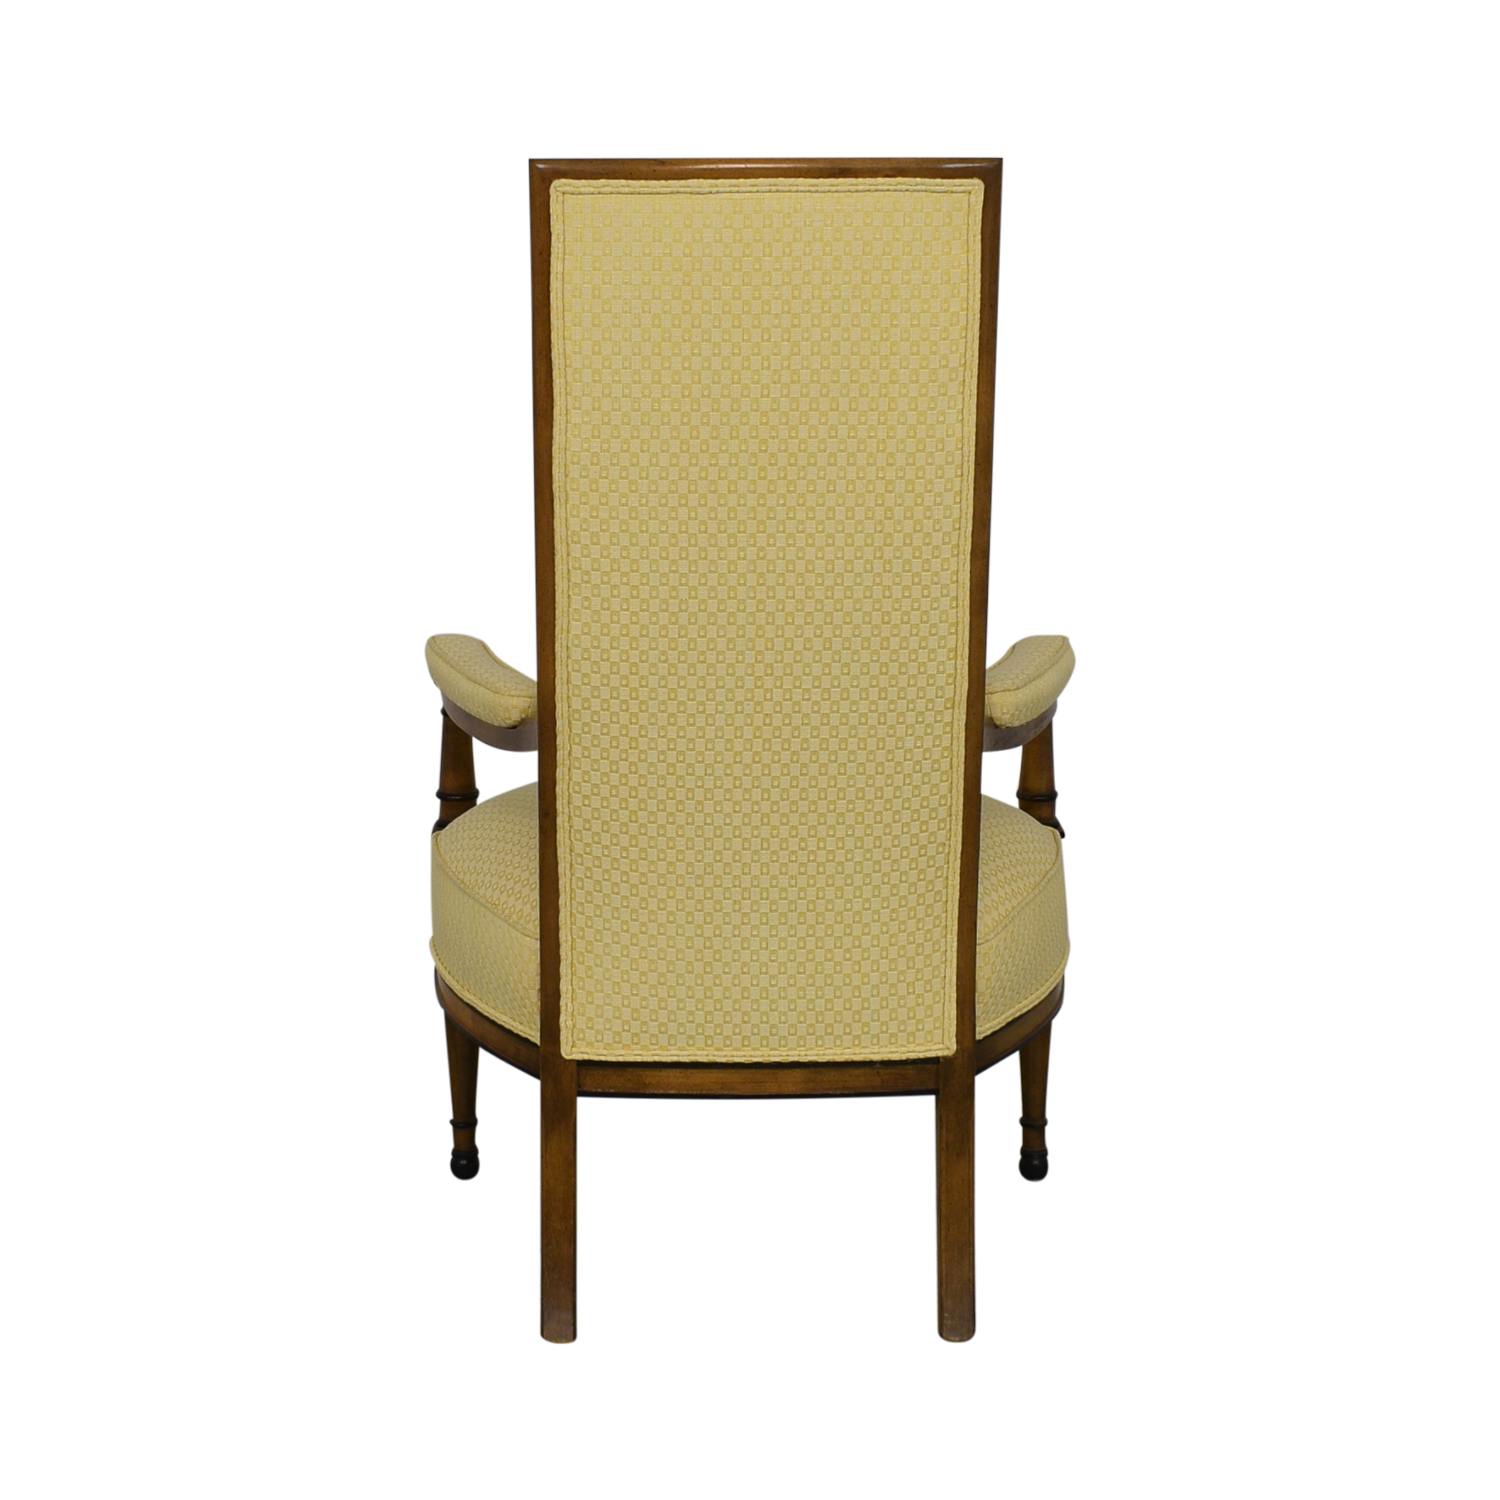 Upholstered High Back Chair Accent Chairs